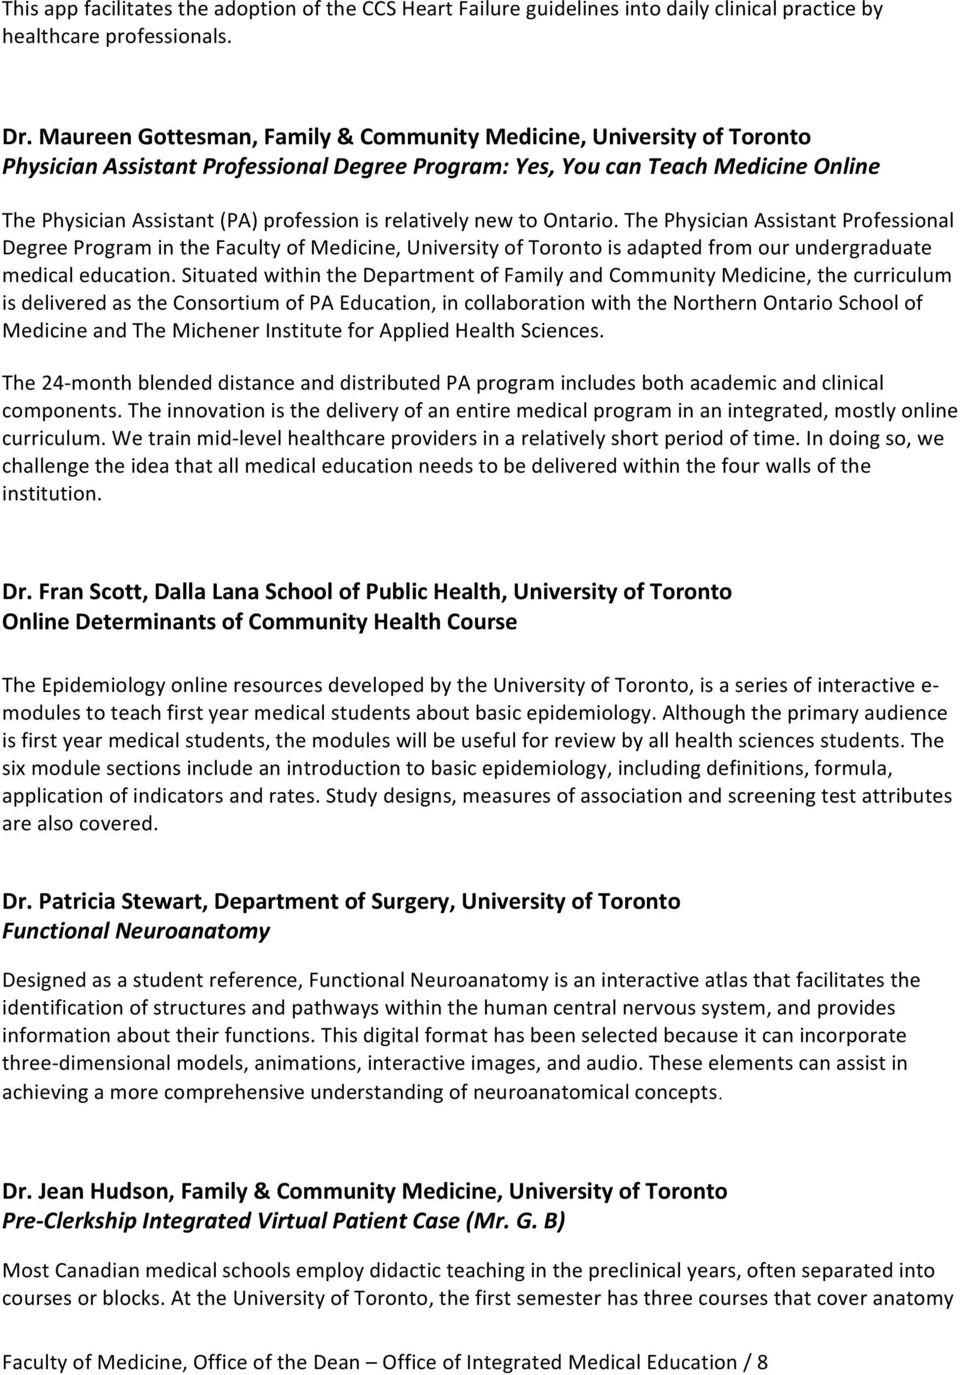 new to Ontario. The Physician Assistant Professional Degree Program in the Faculty of Medicine, University of is adapted from our undergraduate medical education.